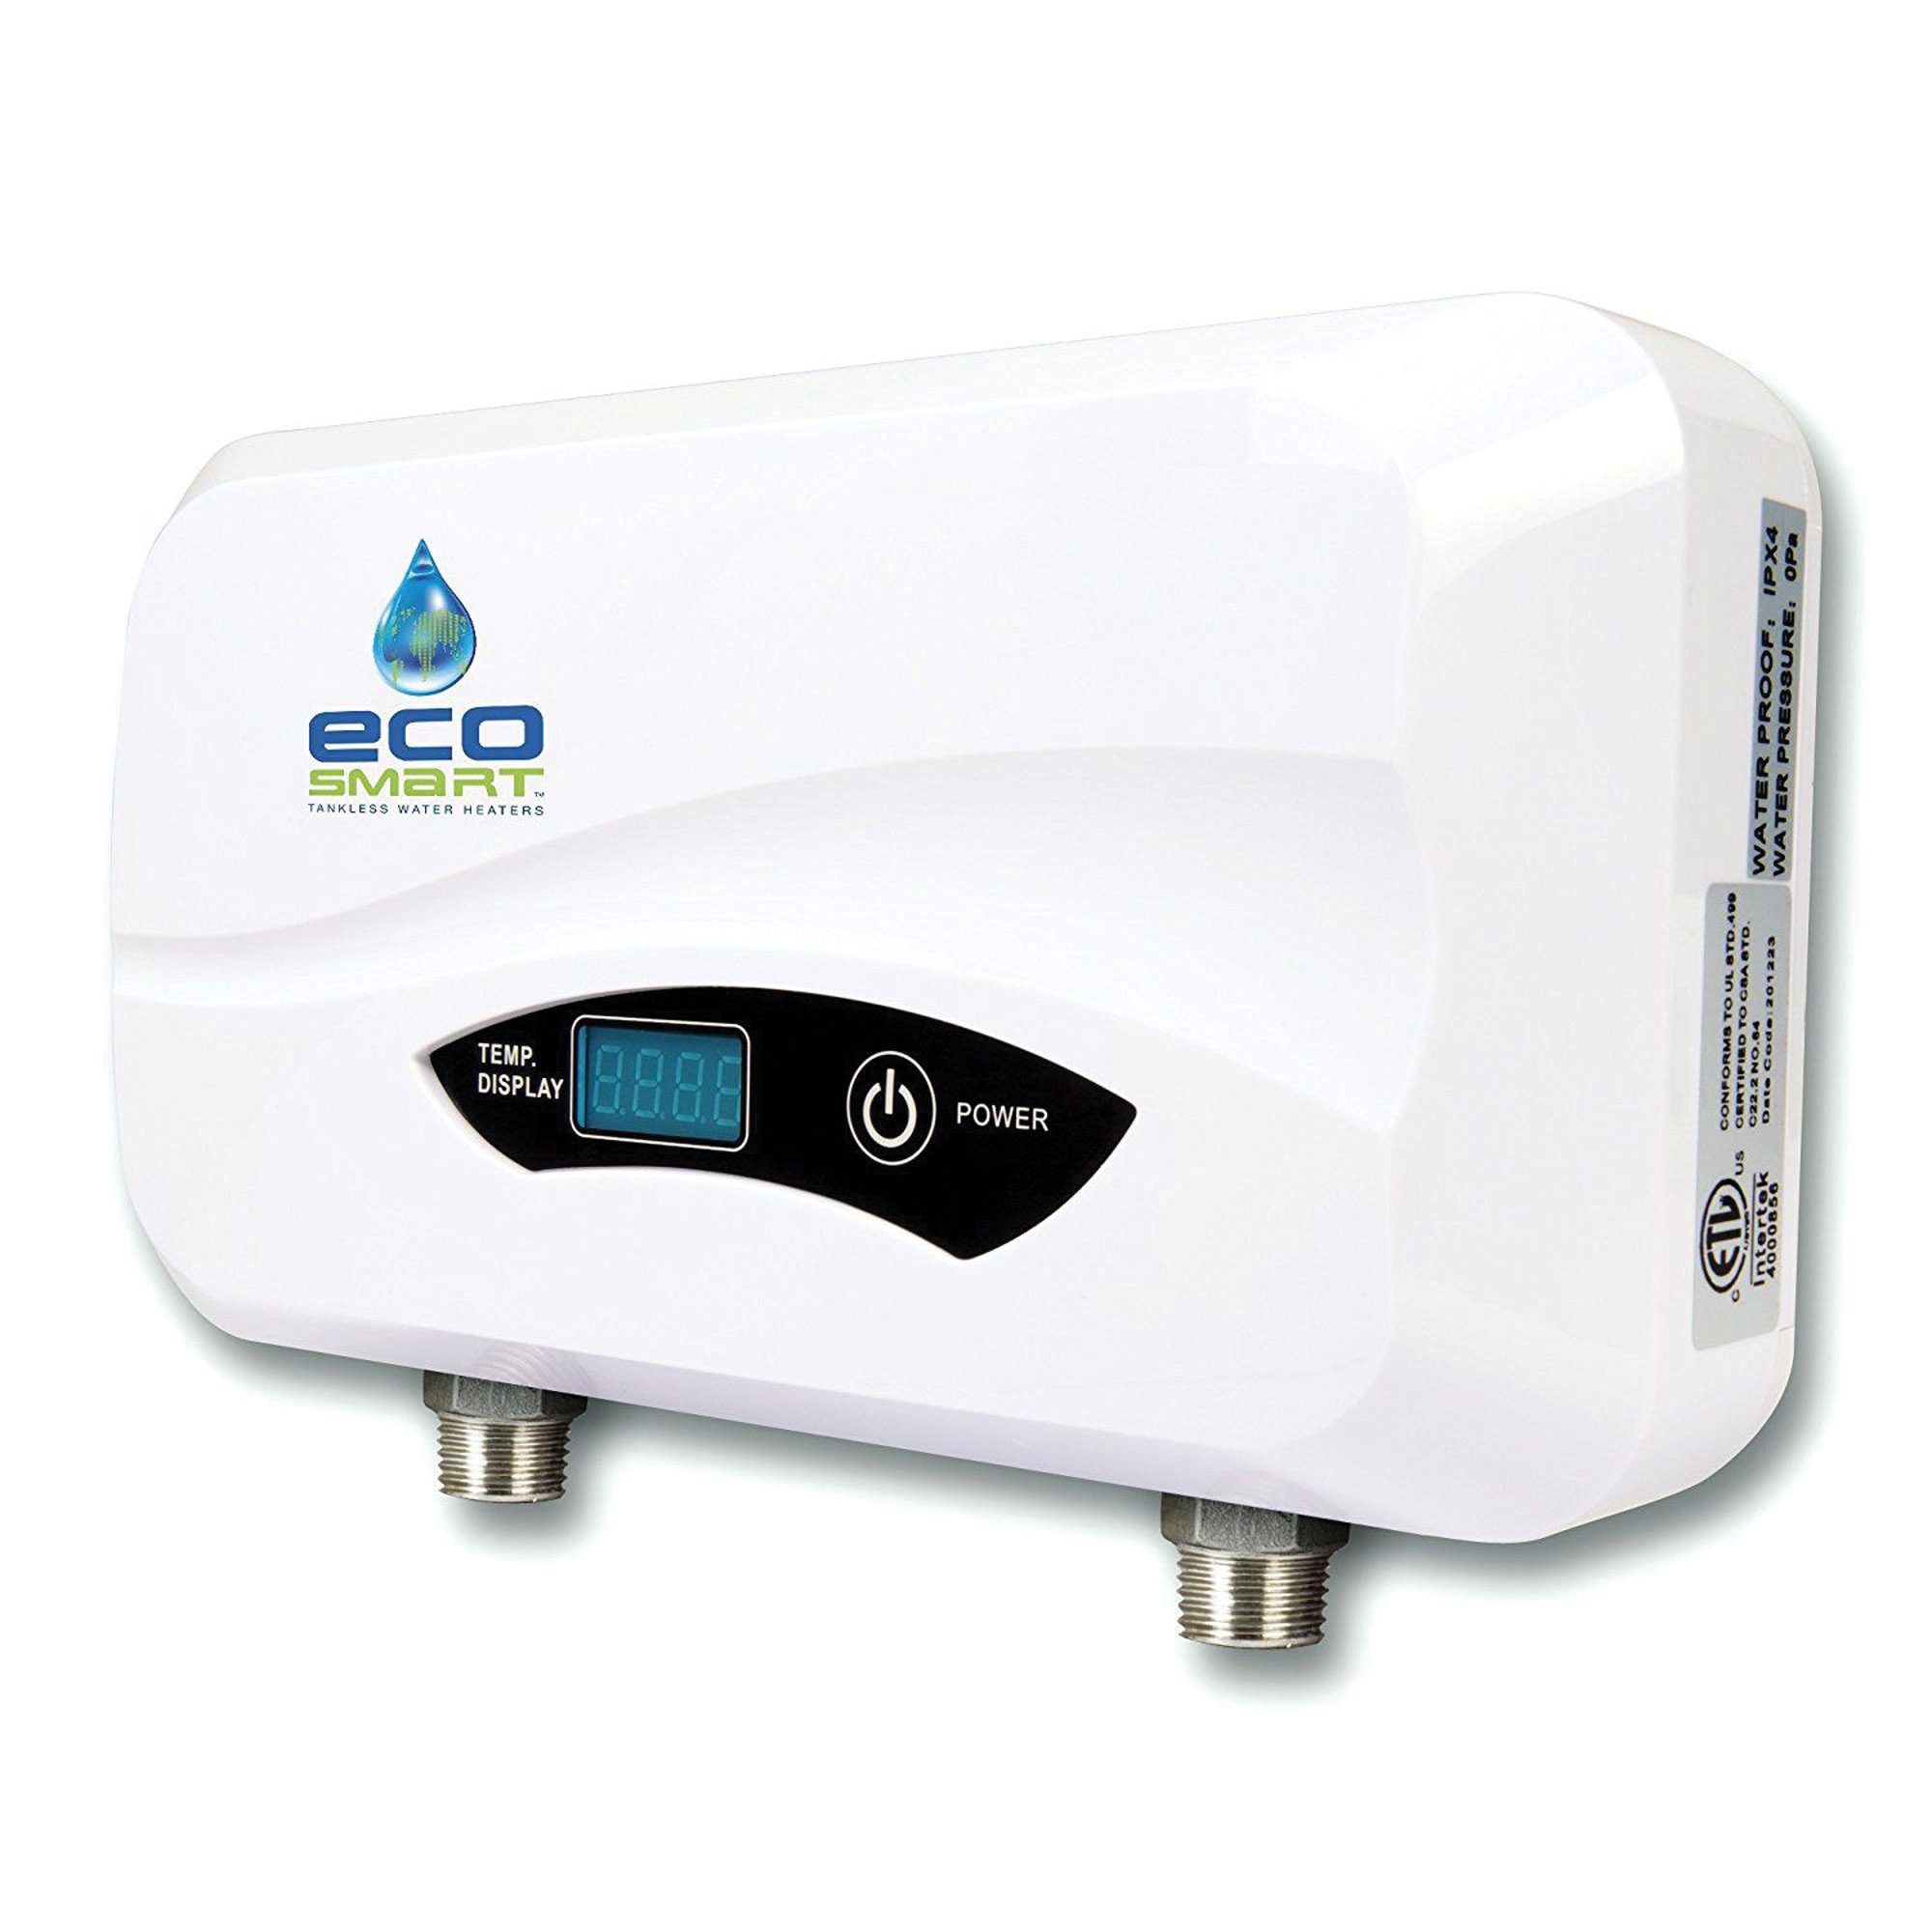 tankless water heater from EcoSmart